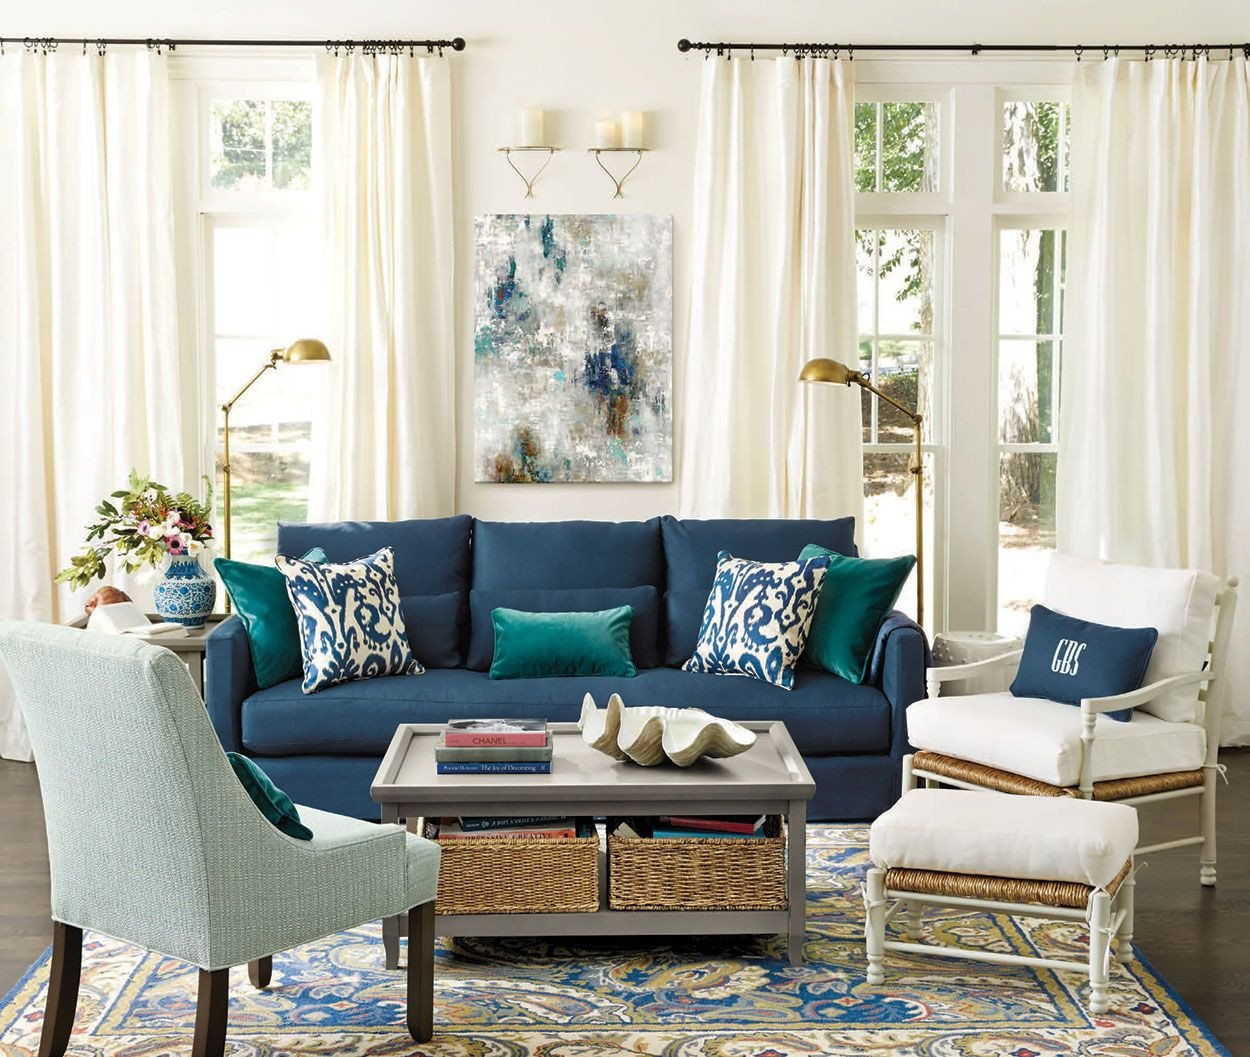 Navy Blue Living Room Decor Living Rooms Ideas for Decorating